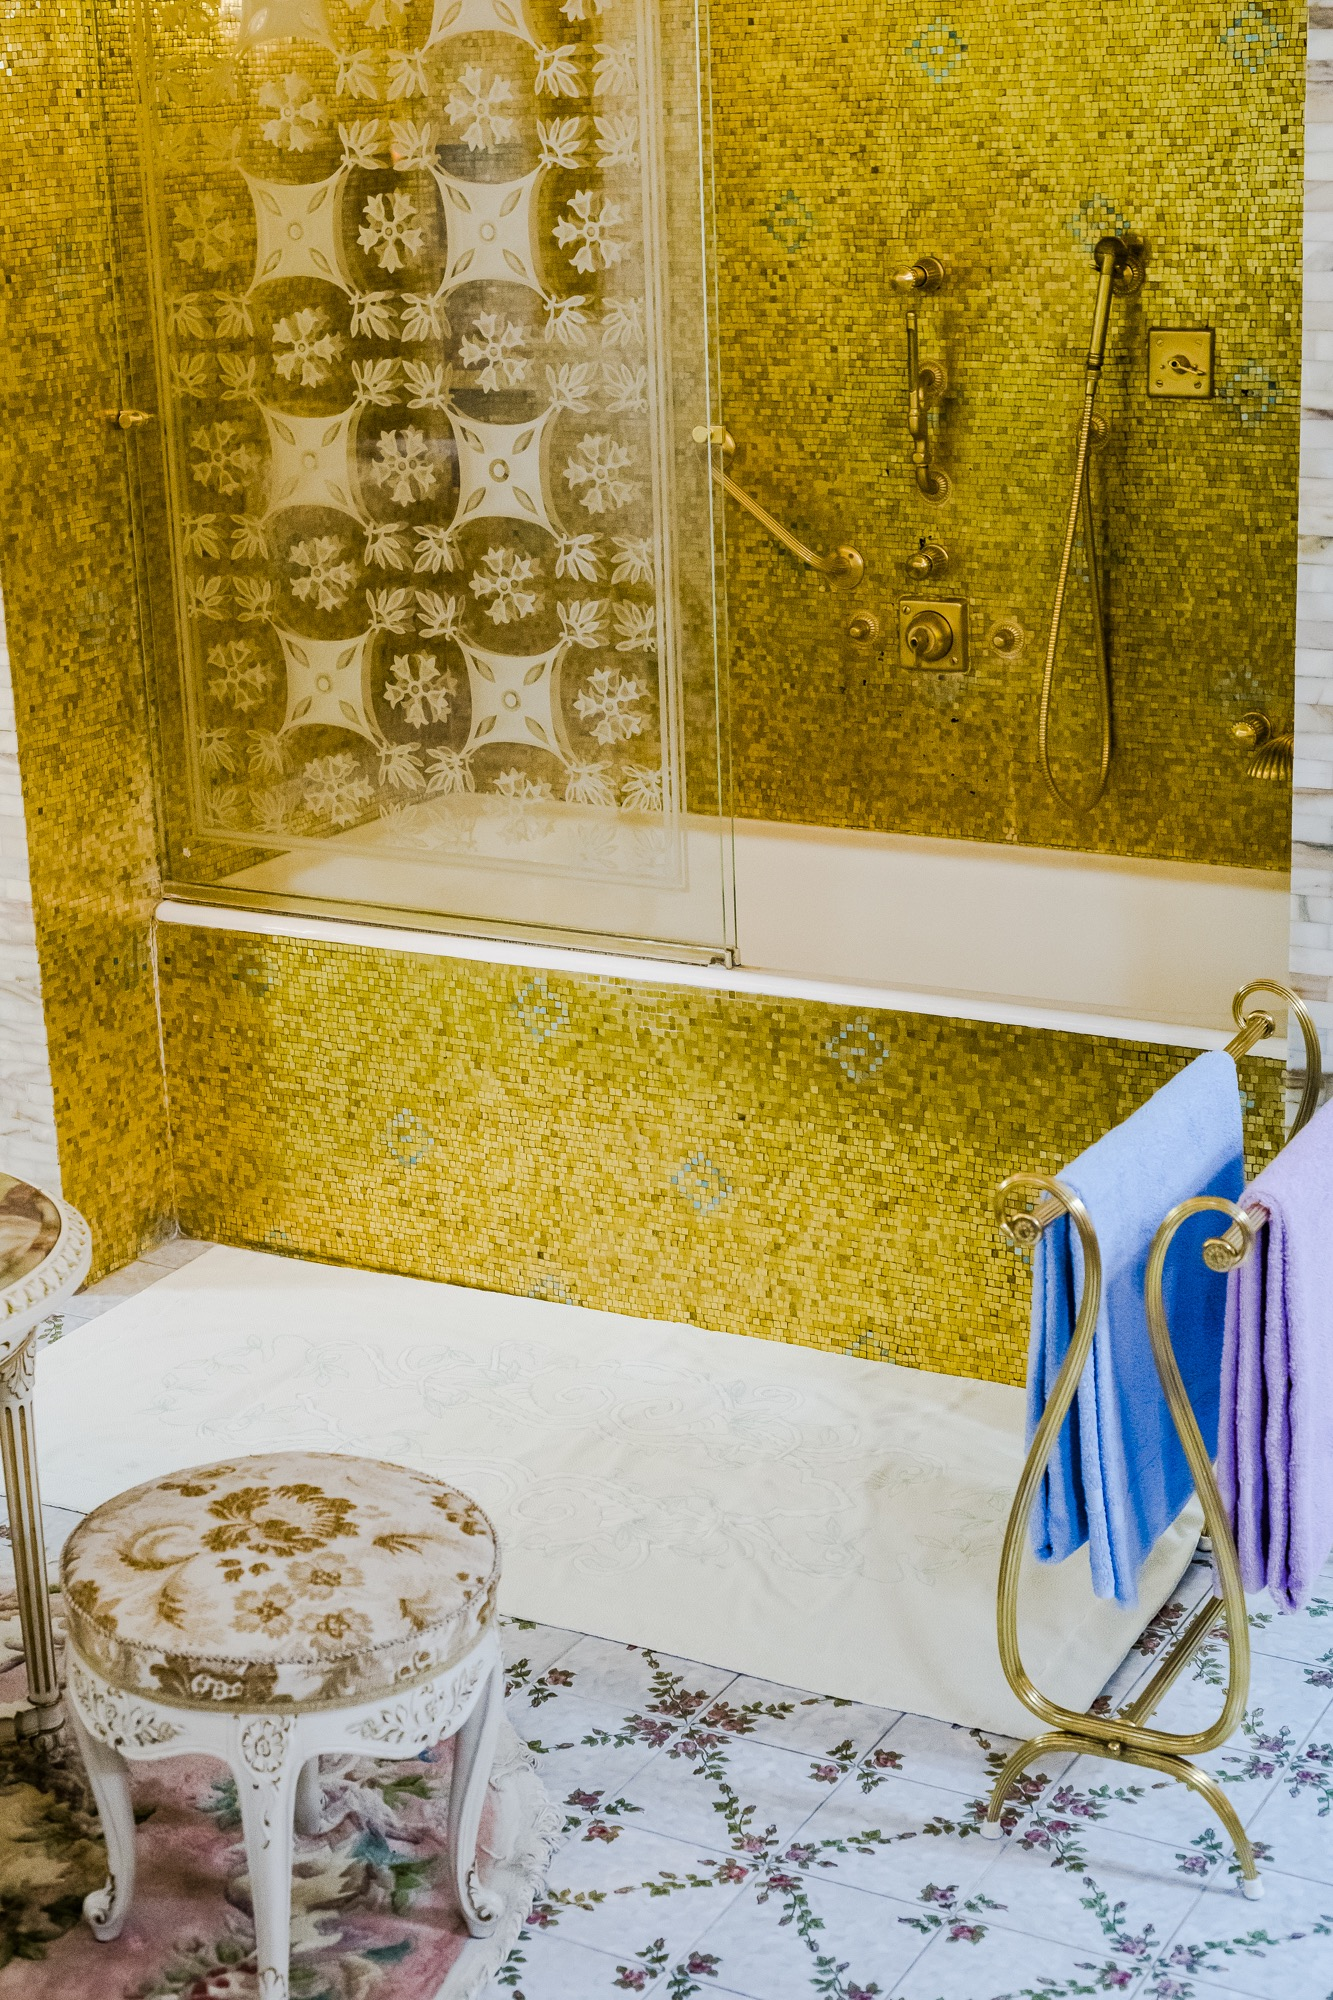 The bathroom in the private house of the Ceaușescus